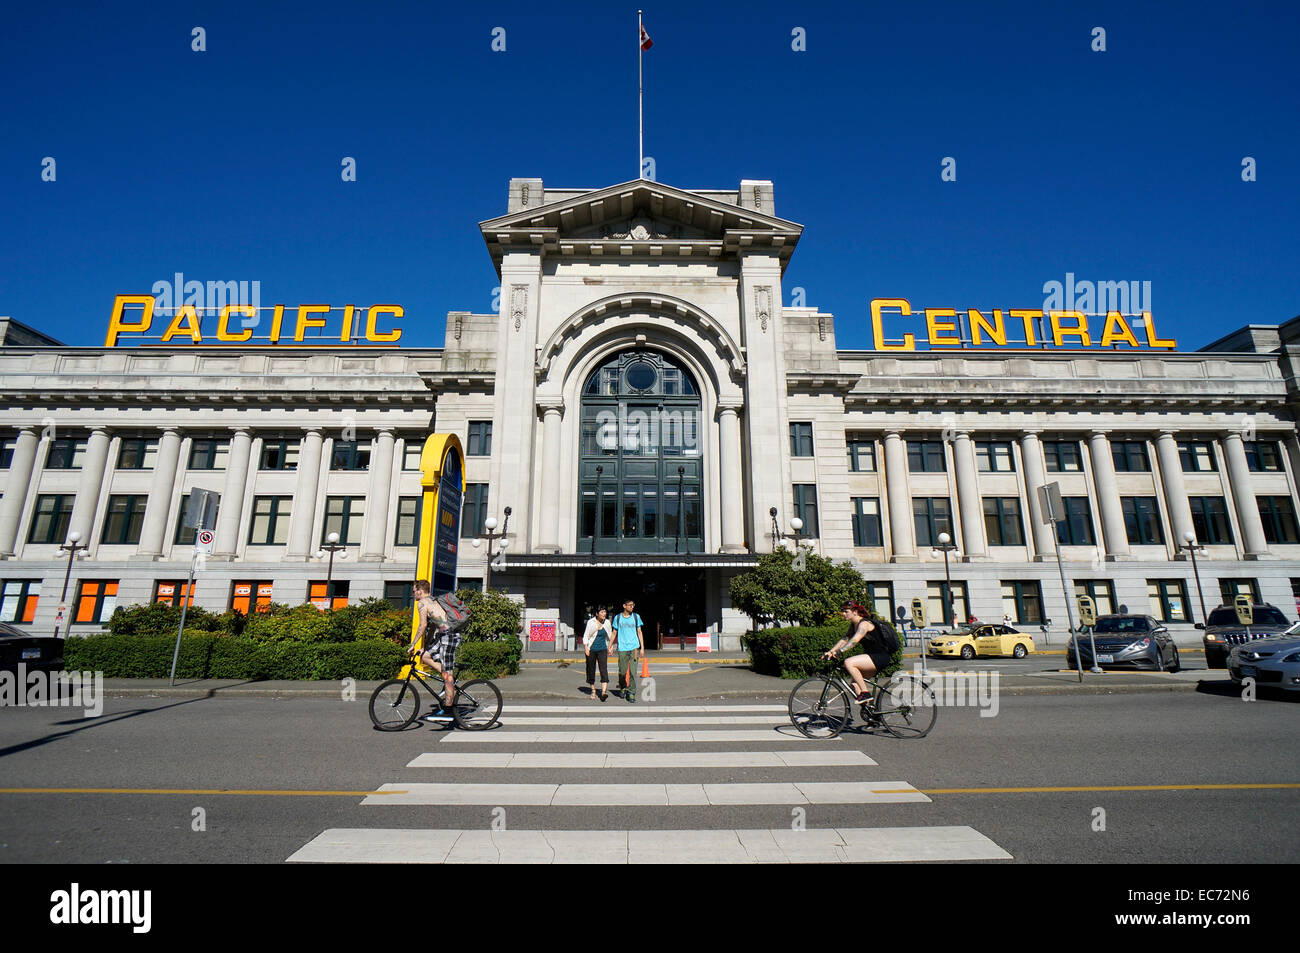 The Pacific Central Station In Vancouver Bc Canada Stock Photo